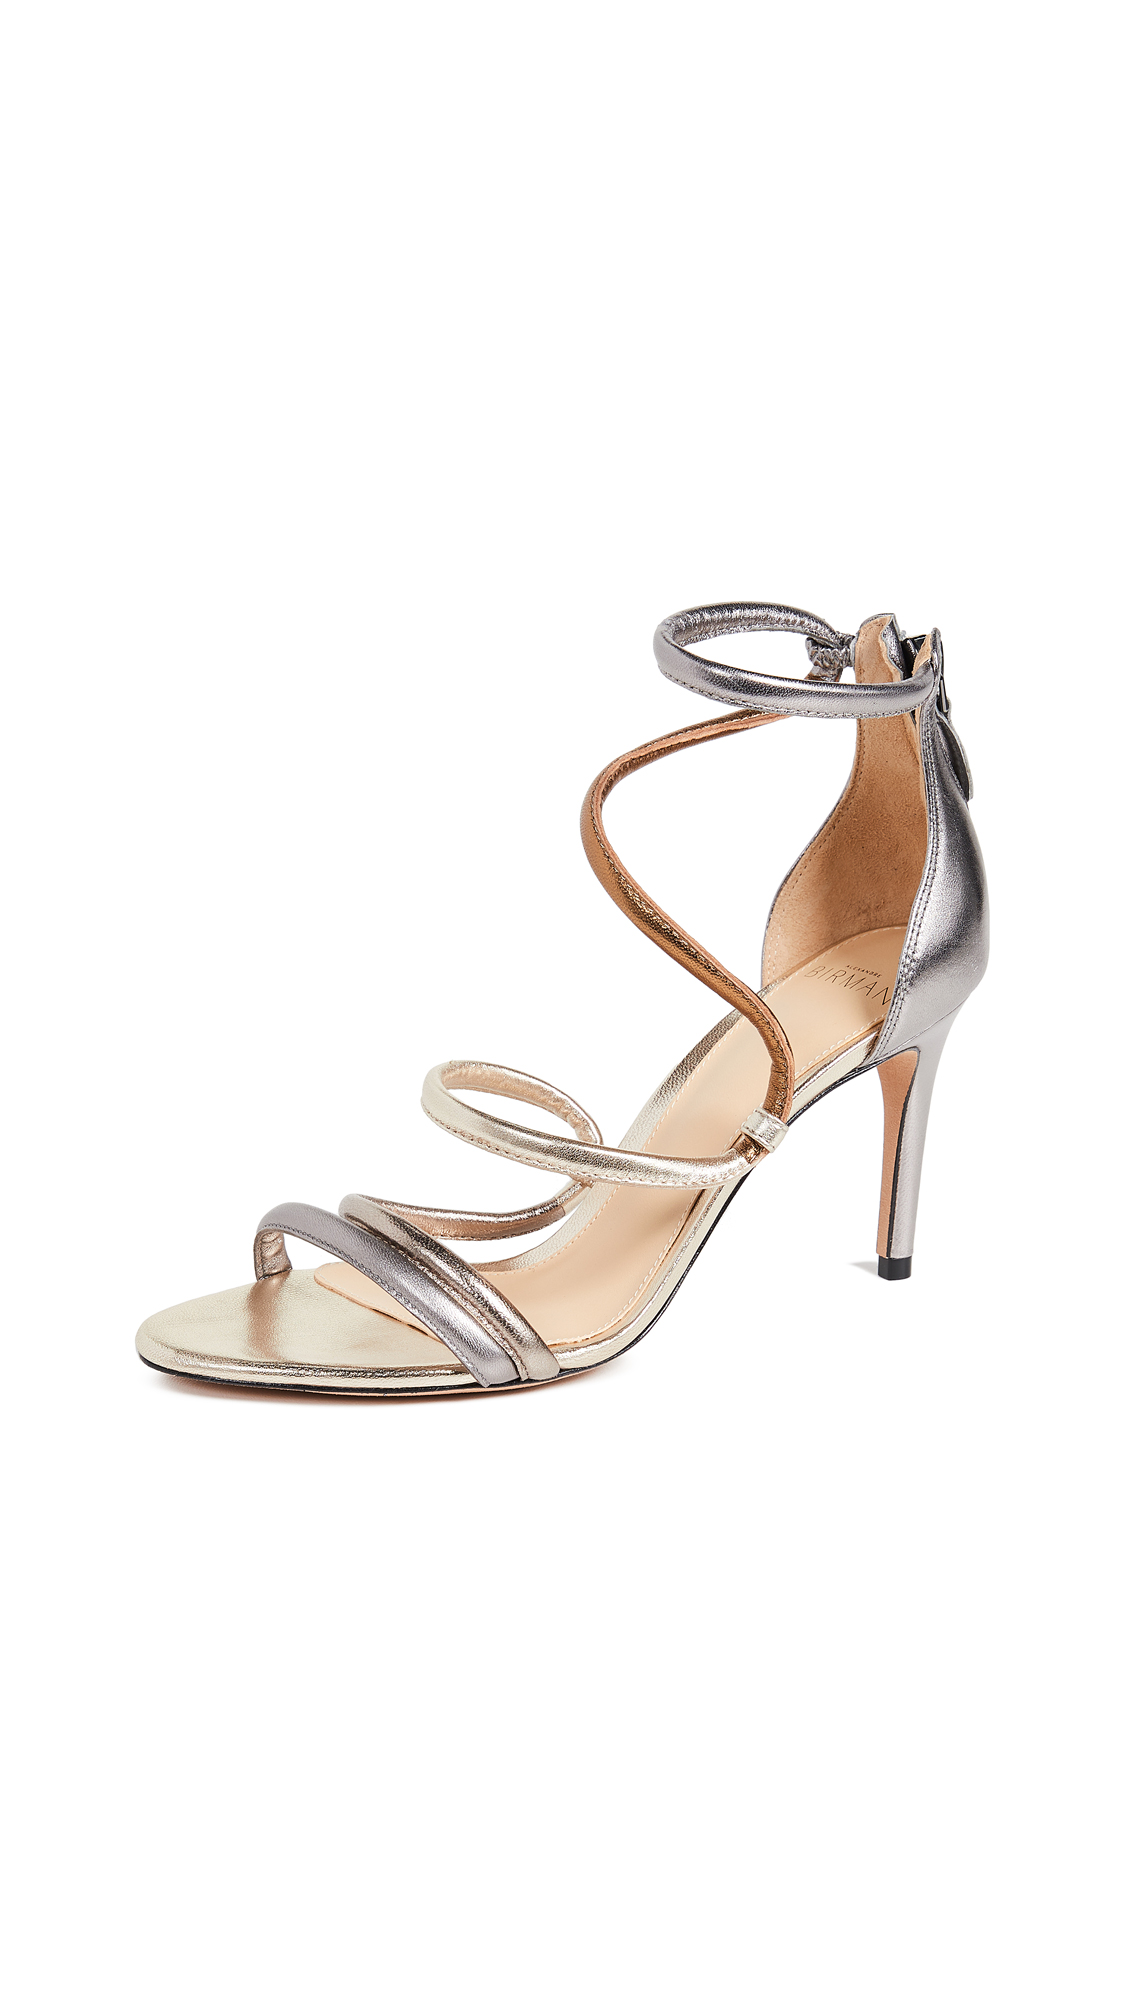 Alexandre Birman Gianny 85mm Sandals - Grafite/Golden/Luna/Bronze